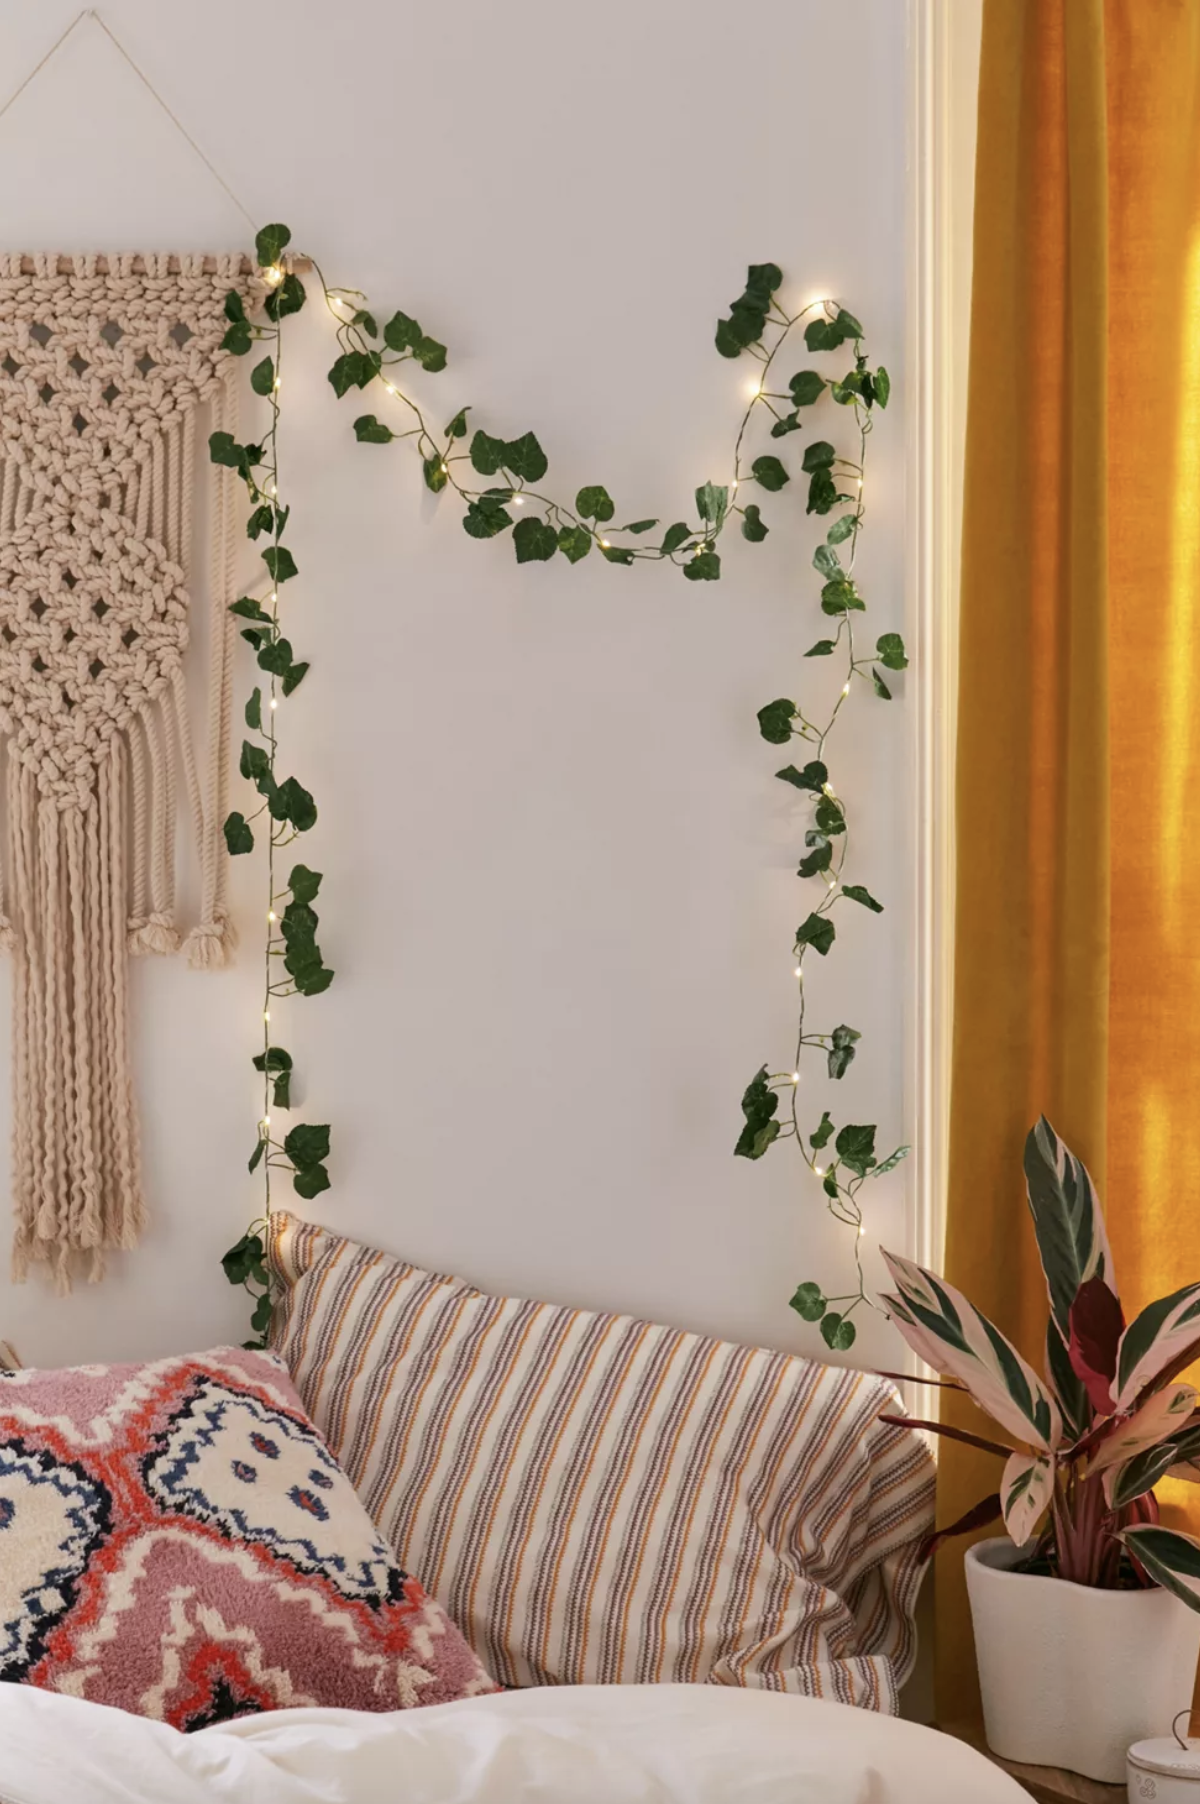 The faux ivy string lights hanging on a wall in a cozy-looking room